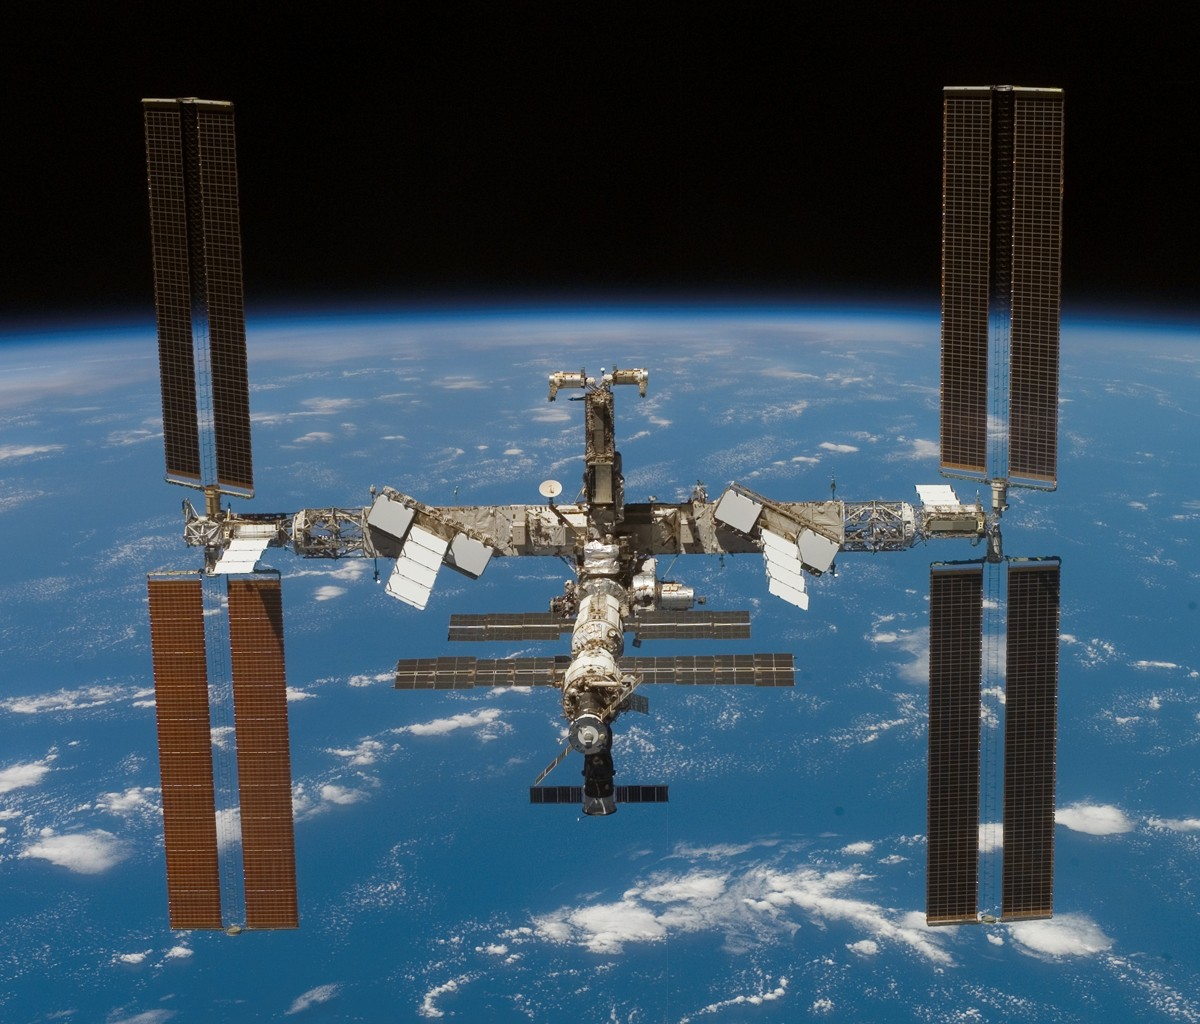 http://1.bp.blogspot.com/-VFiBu3WngnM/T6uUIhGjCBI/AAAAAAAACjk/p_O8Ynmuf7Q/s1600/TabletPC-iss-international-space-station-1200x1024.jpg